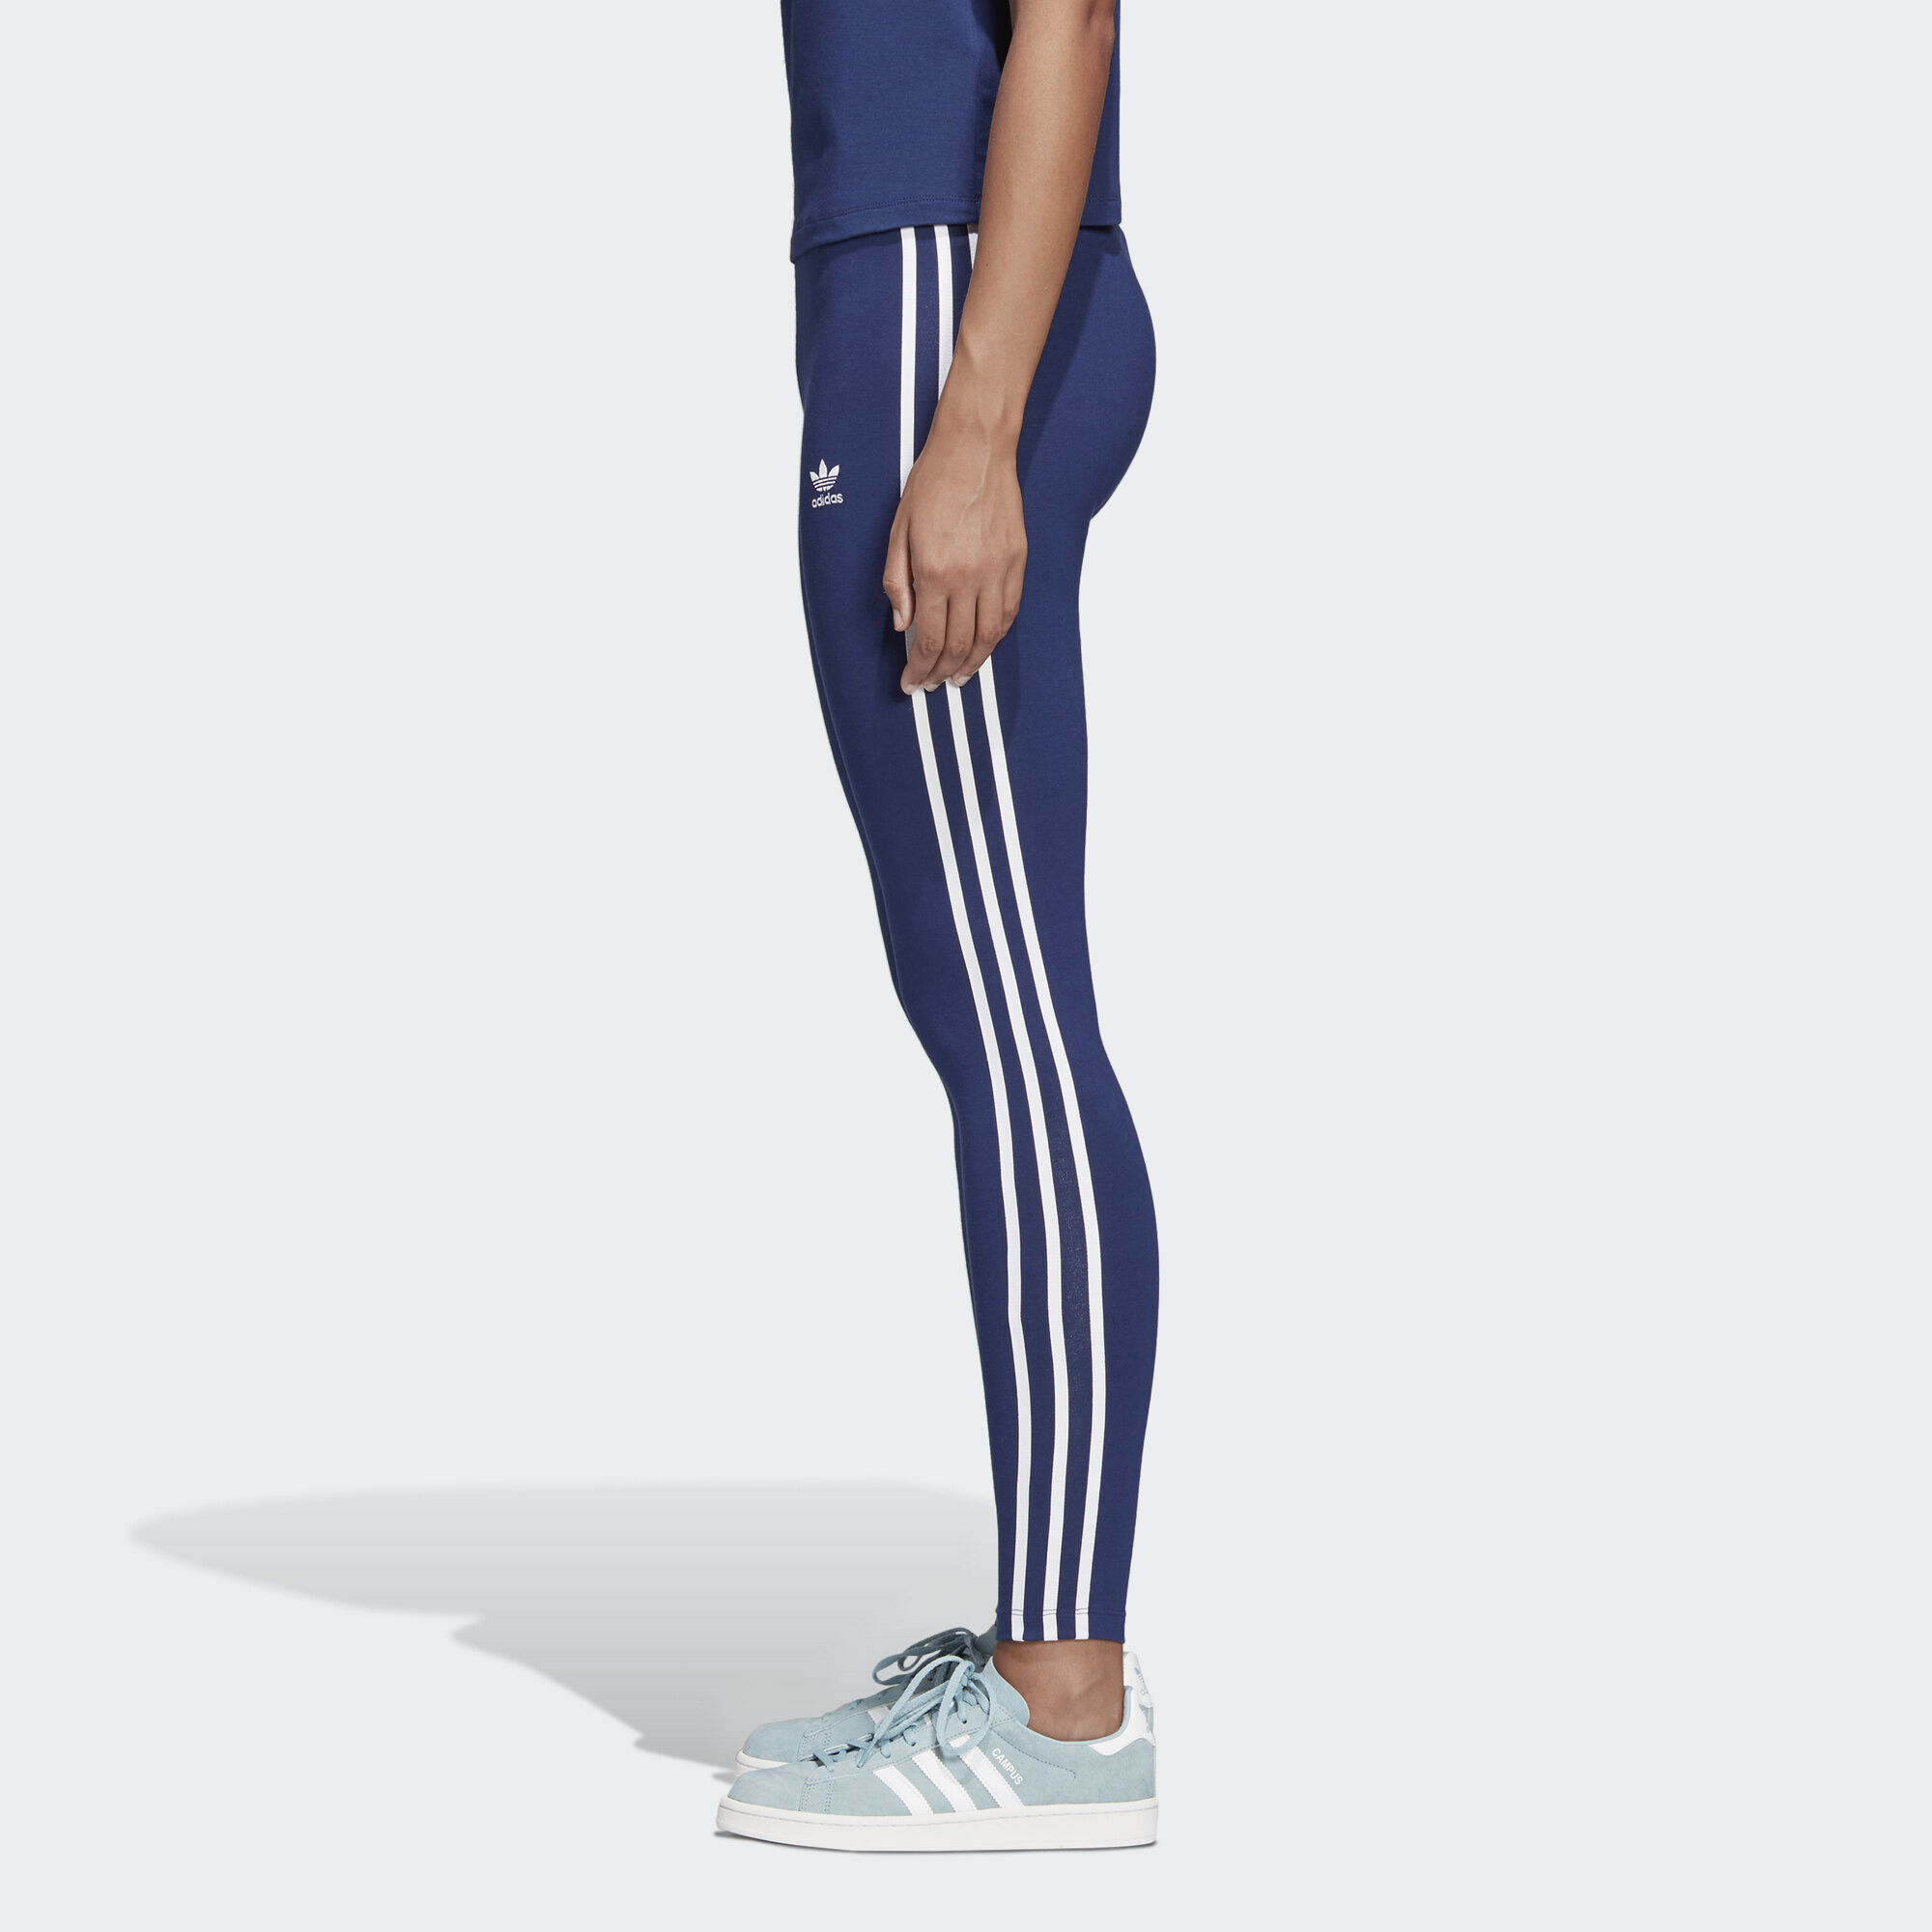 designer fashion 4795e 14579 Leggings 3-Stripes - Nero adidas  adidas Italia